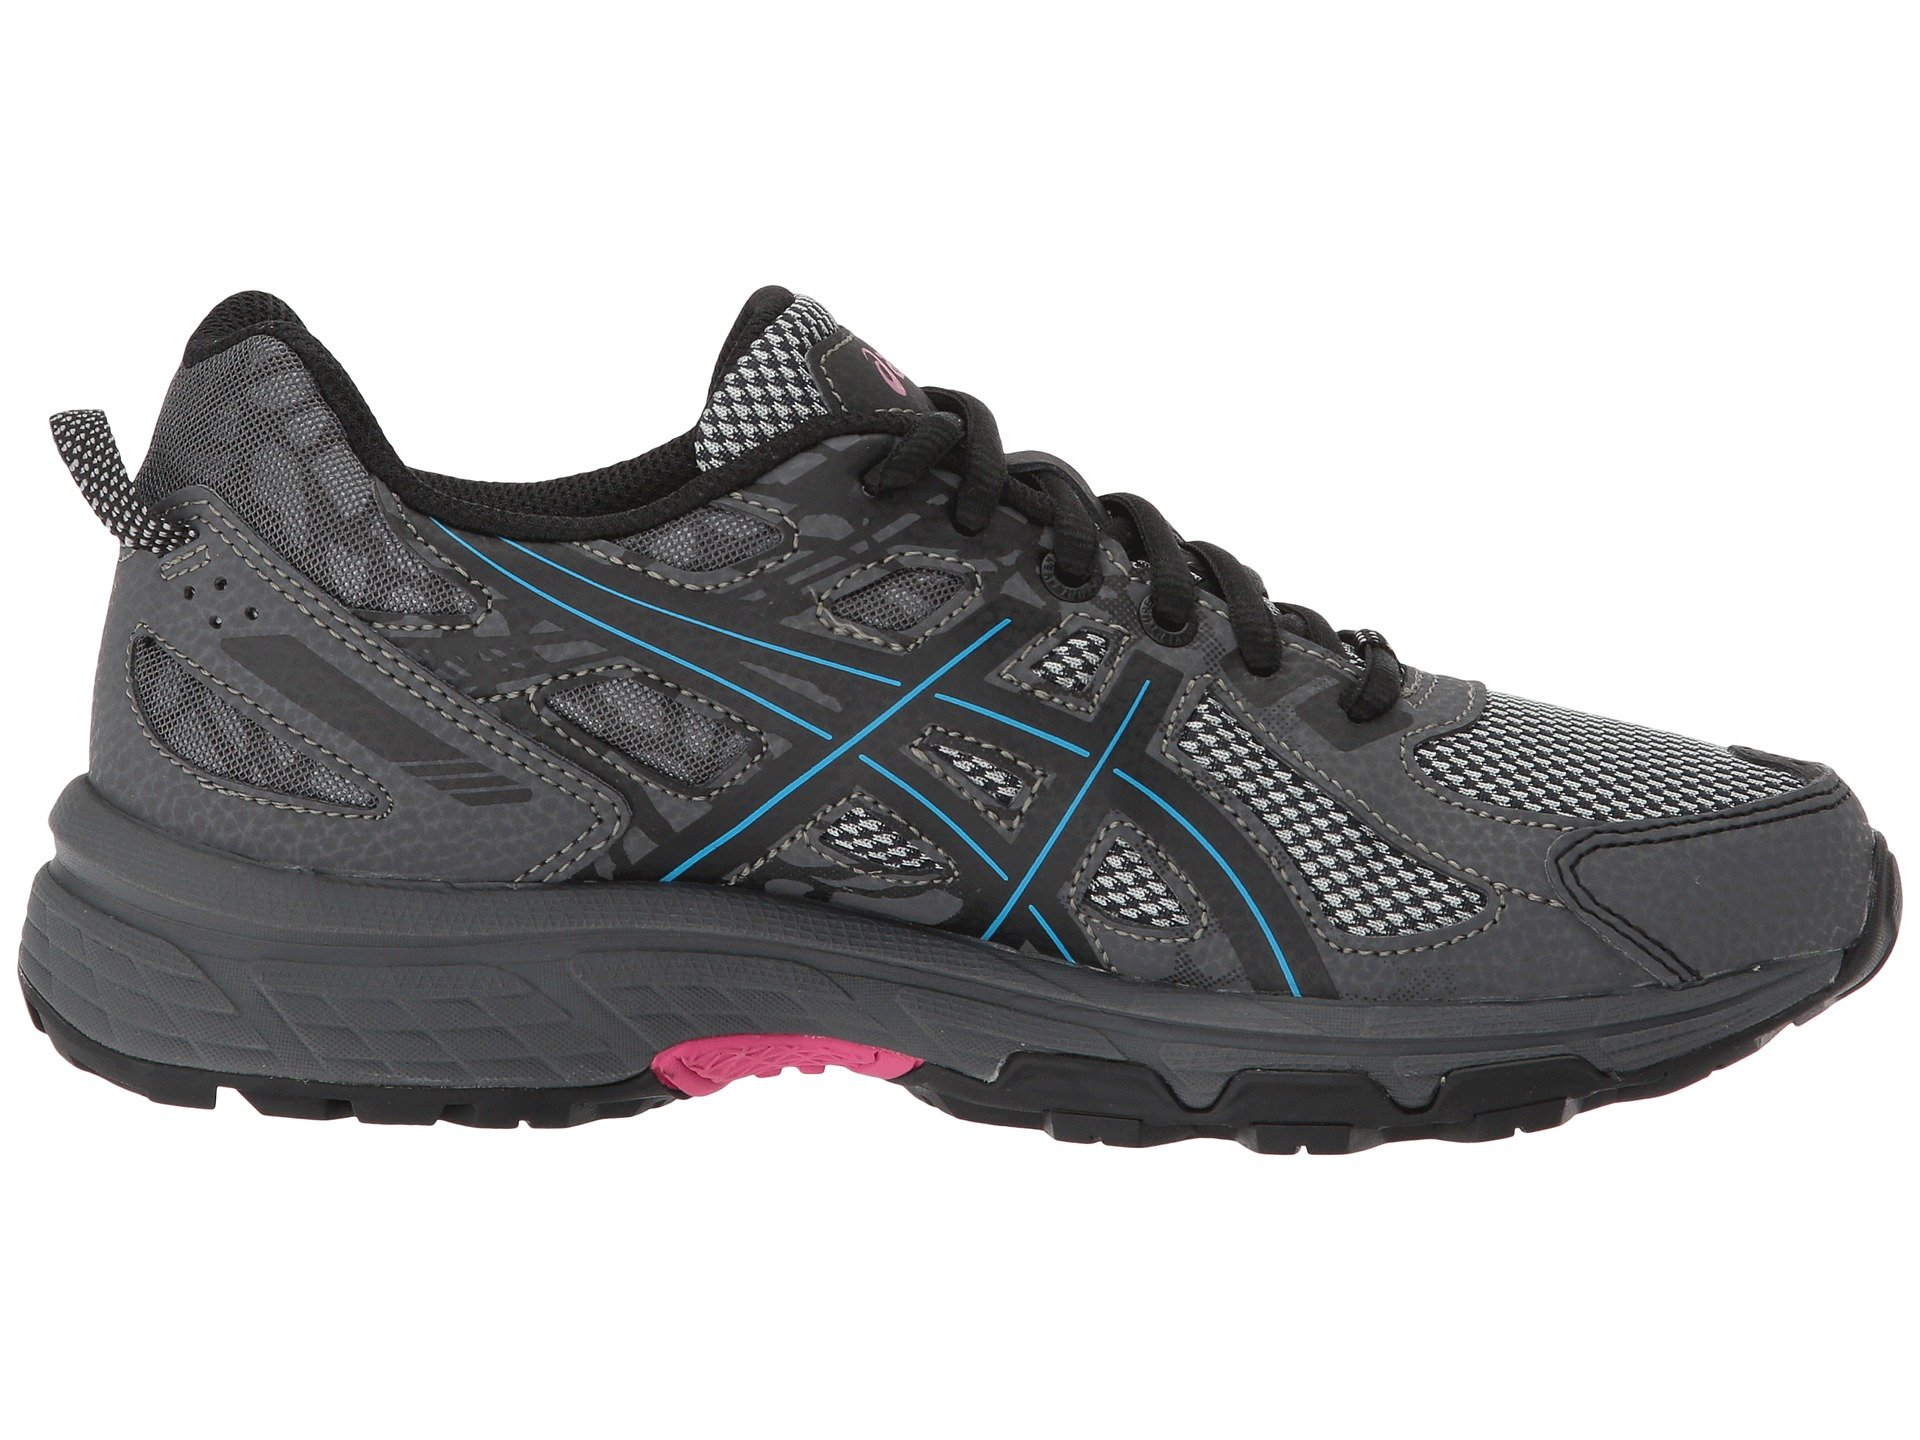 ASICS Womens Gel-Venture 6 Black/Island Blue/Pink 5 B US by ASICS (Image #8)